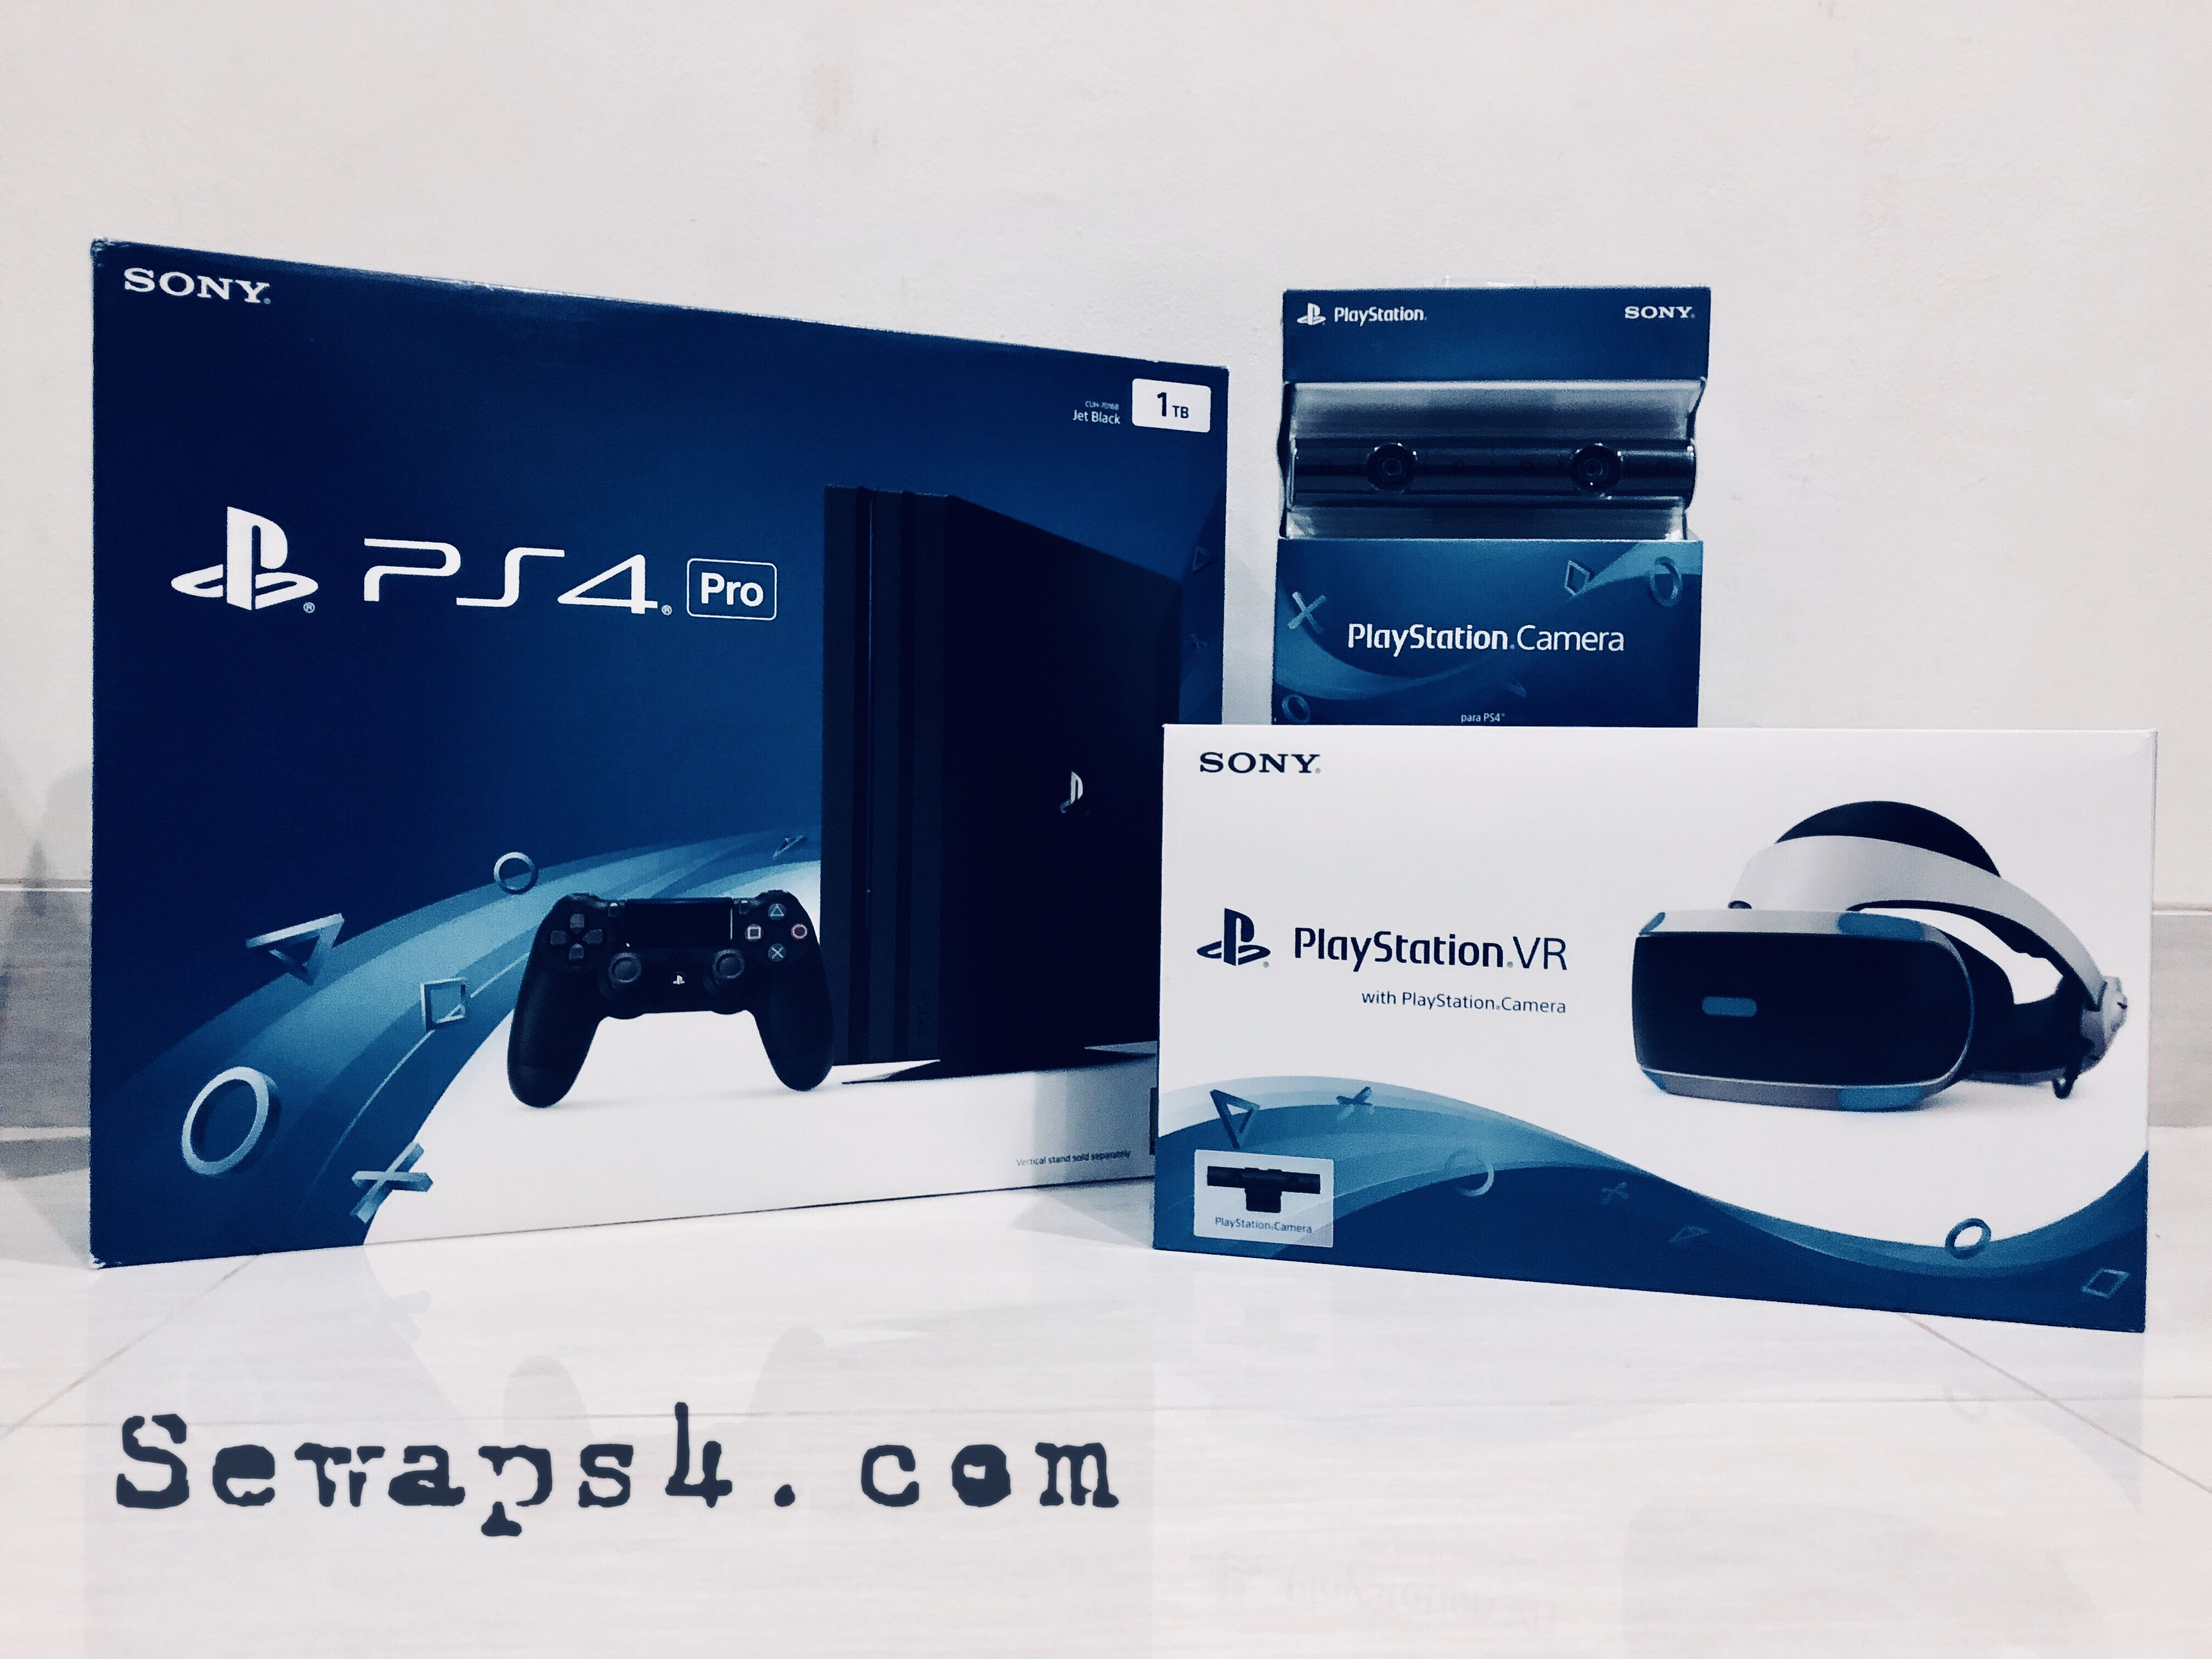 30+ Ps store tangerang ideas in 2021